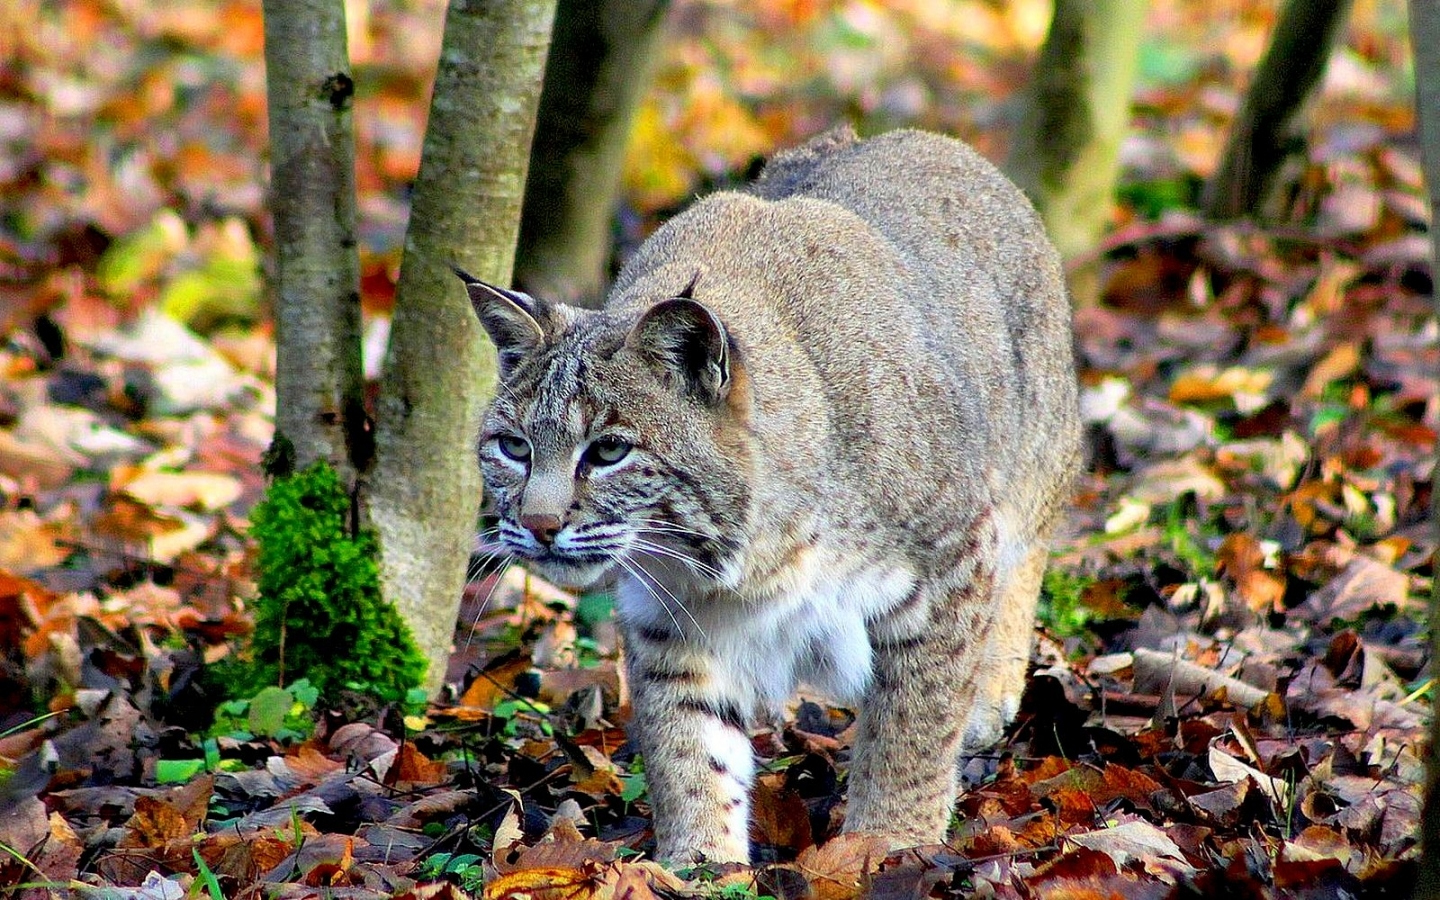 39538 download wallpaper Animals, Bobcats screensavers and pictures for free